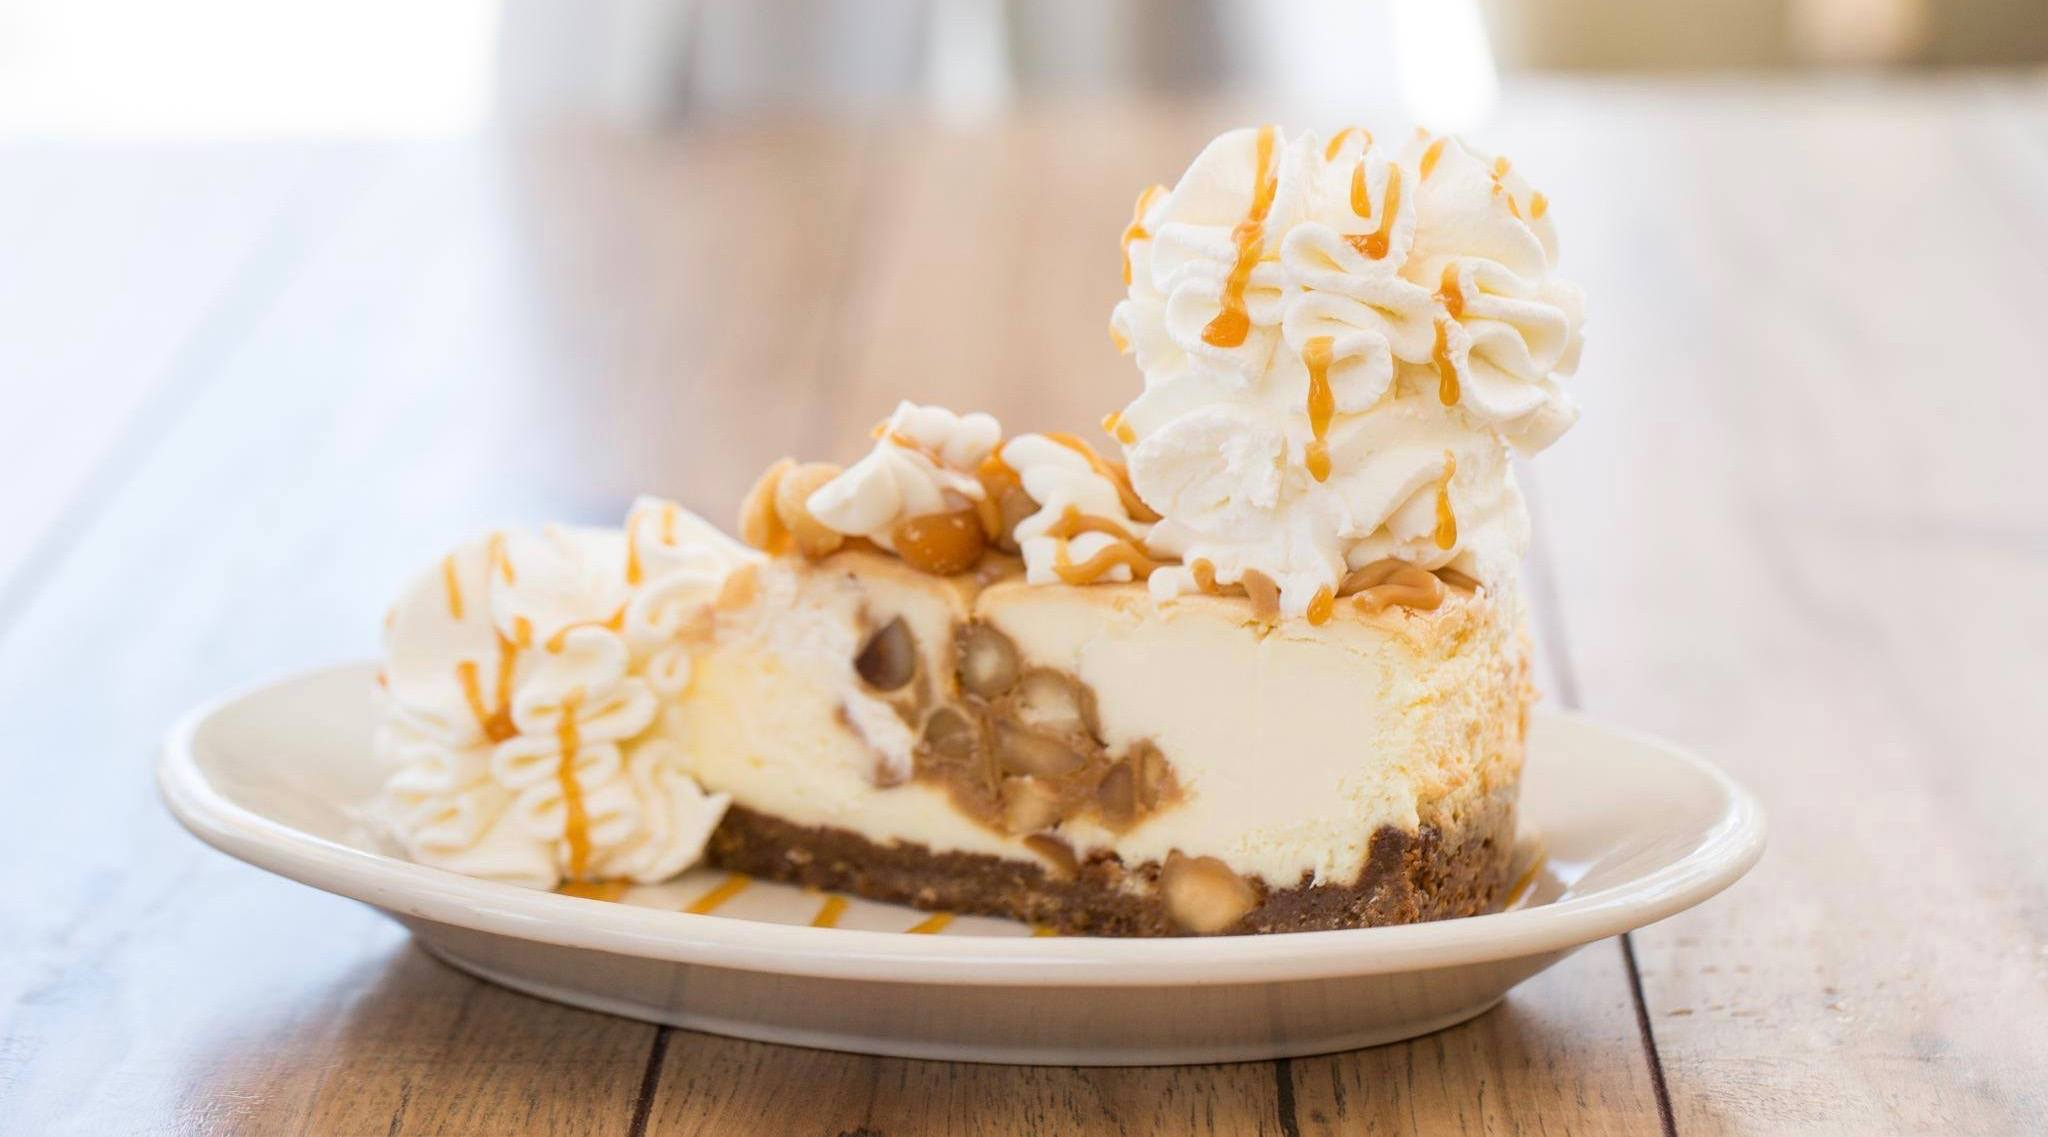 The Cheesecake Factory is opening a Toronto location this fall